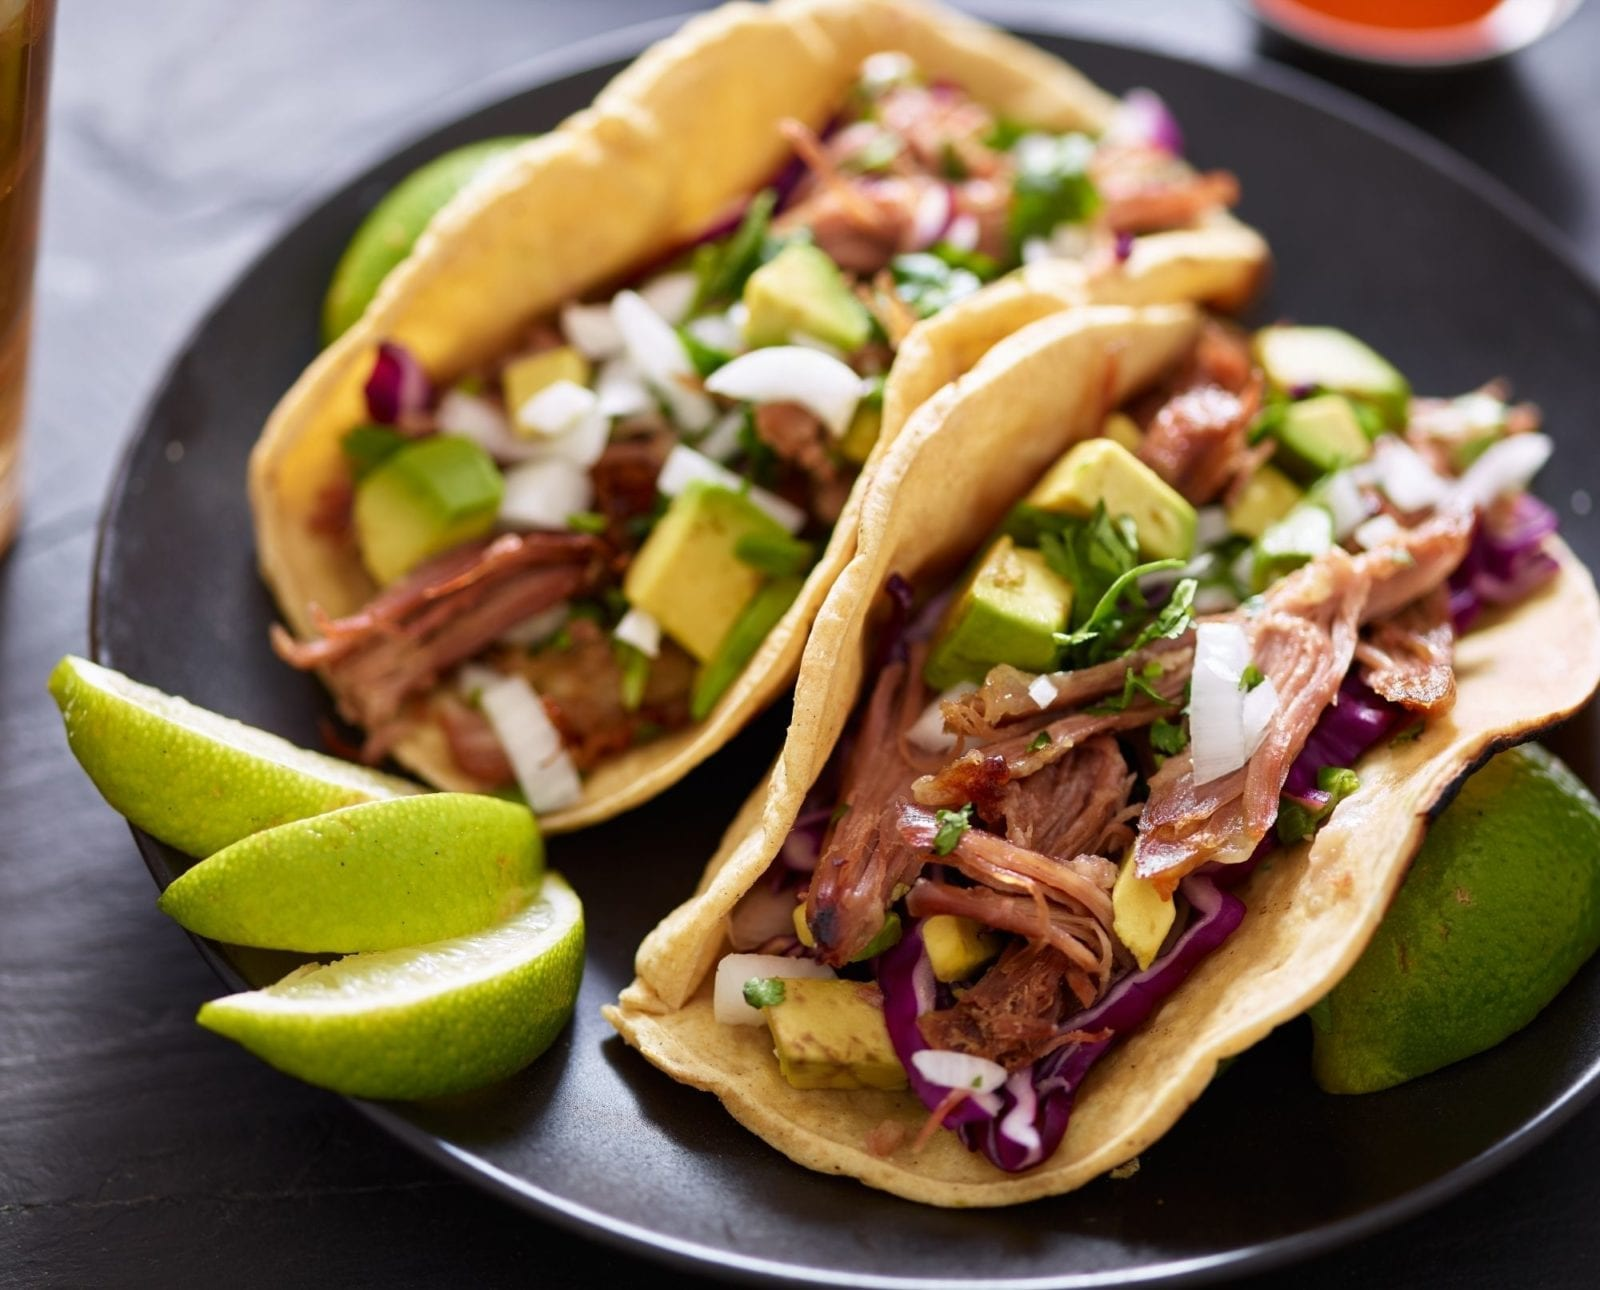 Meaty carnitas in flour tortillas with avocado, lime, and cilantro on a black plate.